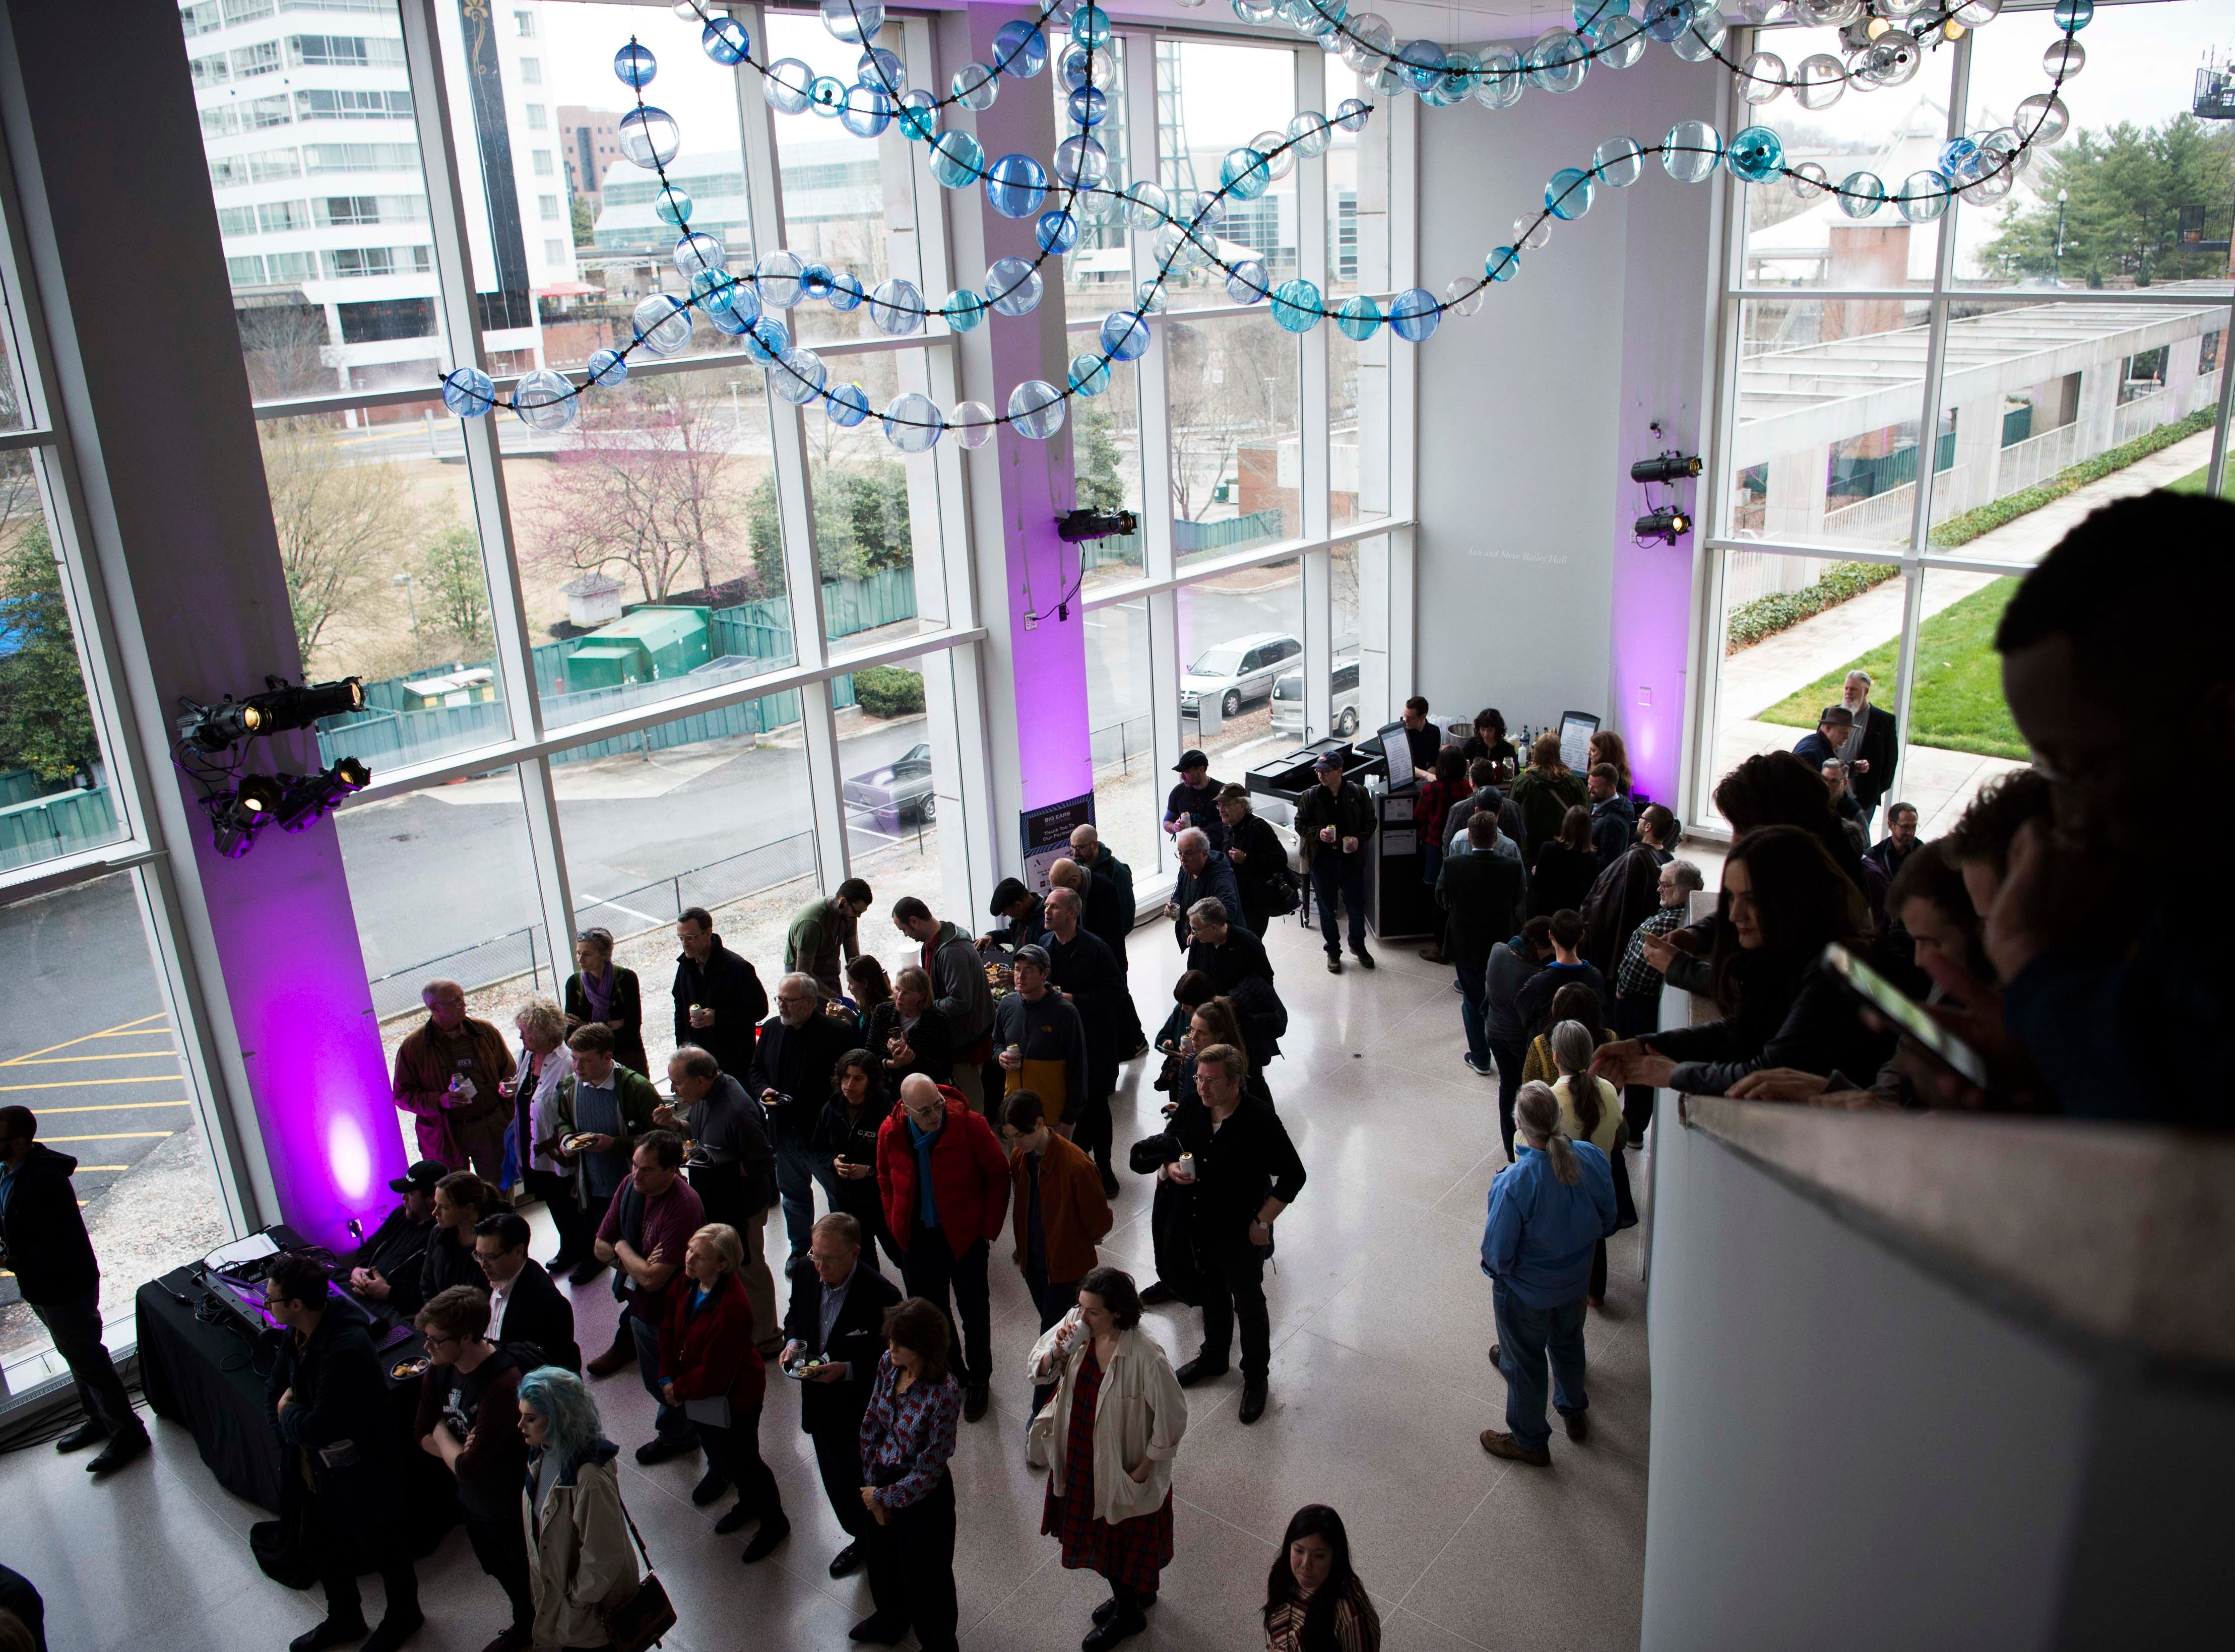 A crowd of Big Ears Festival attendees mingle in the Knoxville Museum of Art in Knoxville Thursday, March 21, 2019.